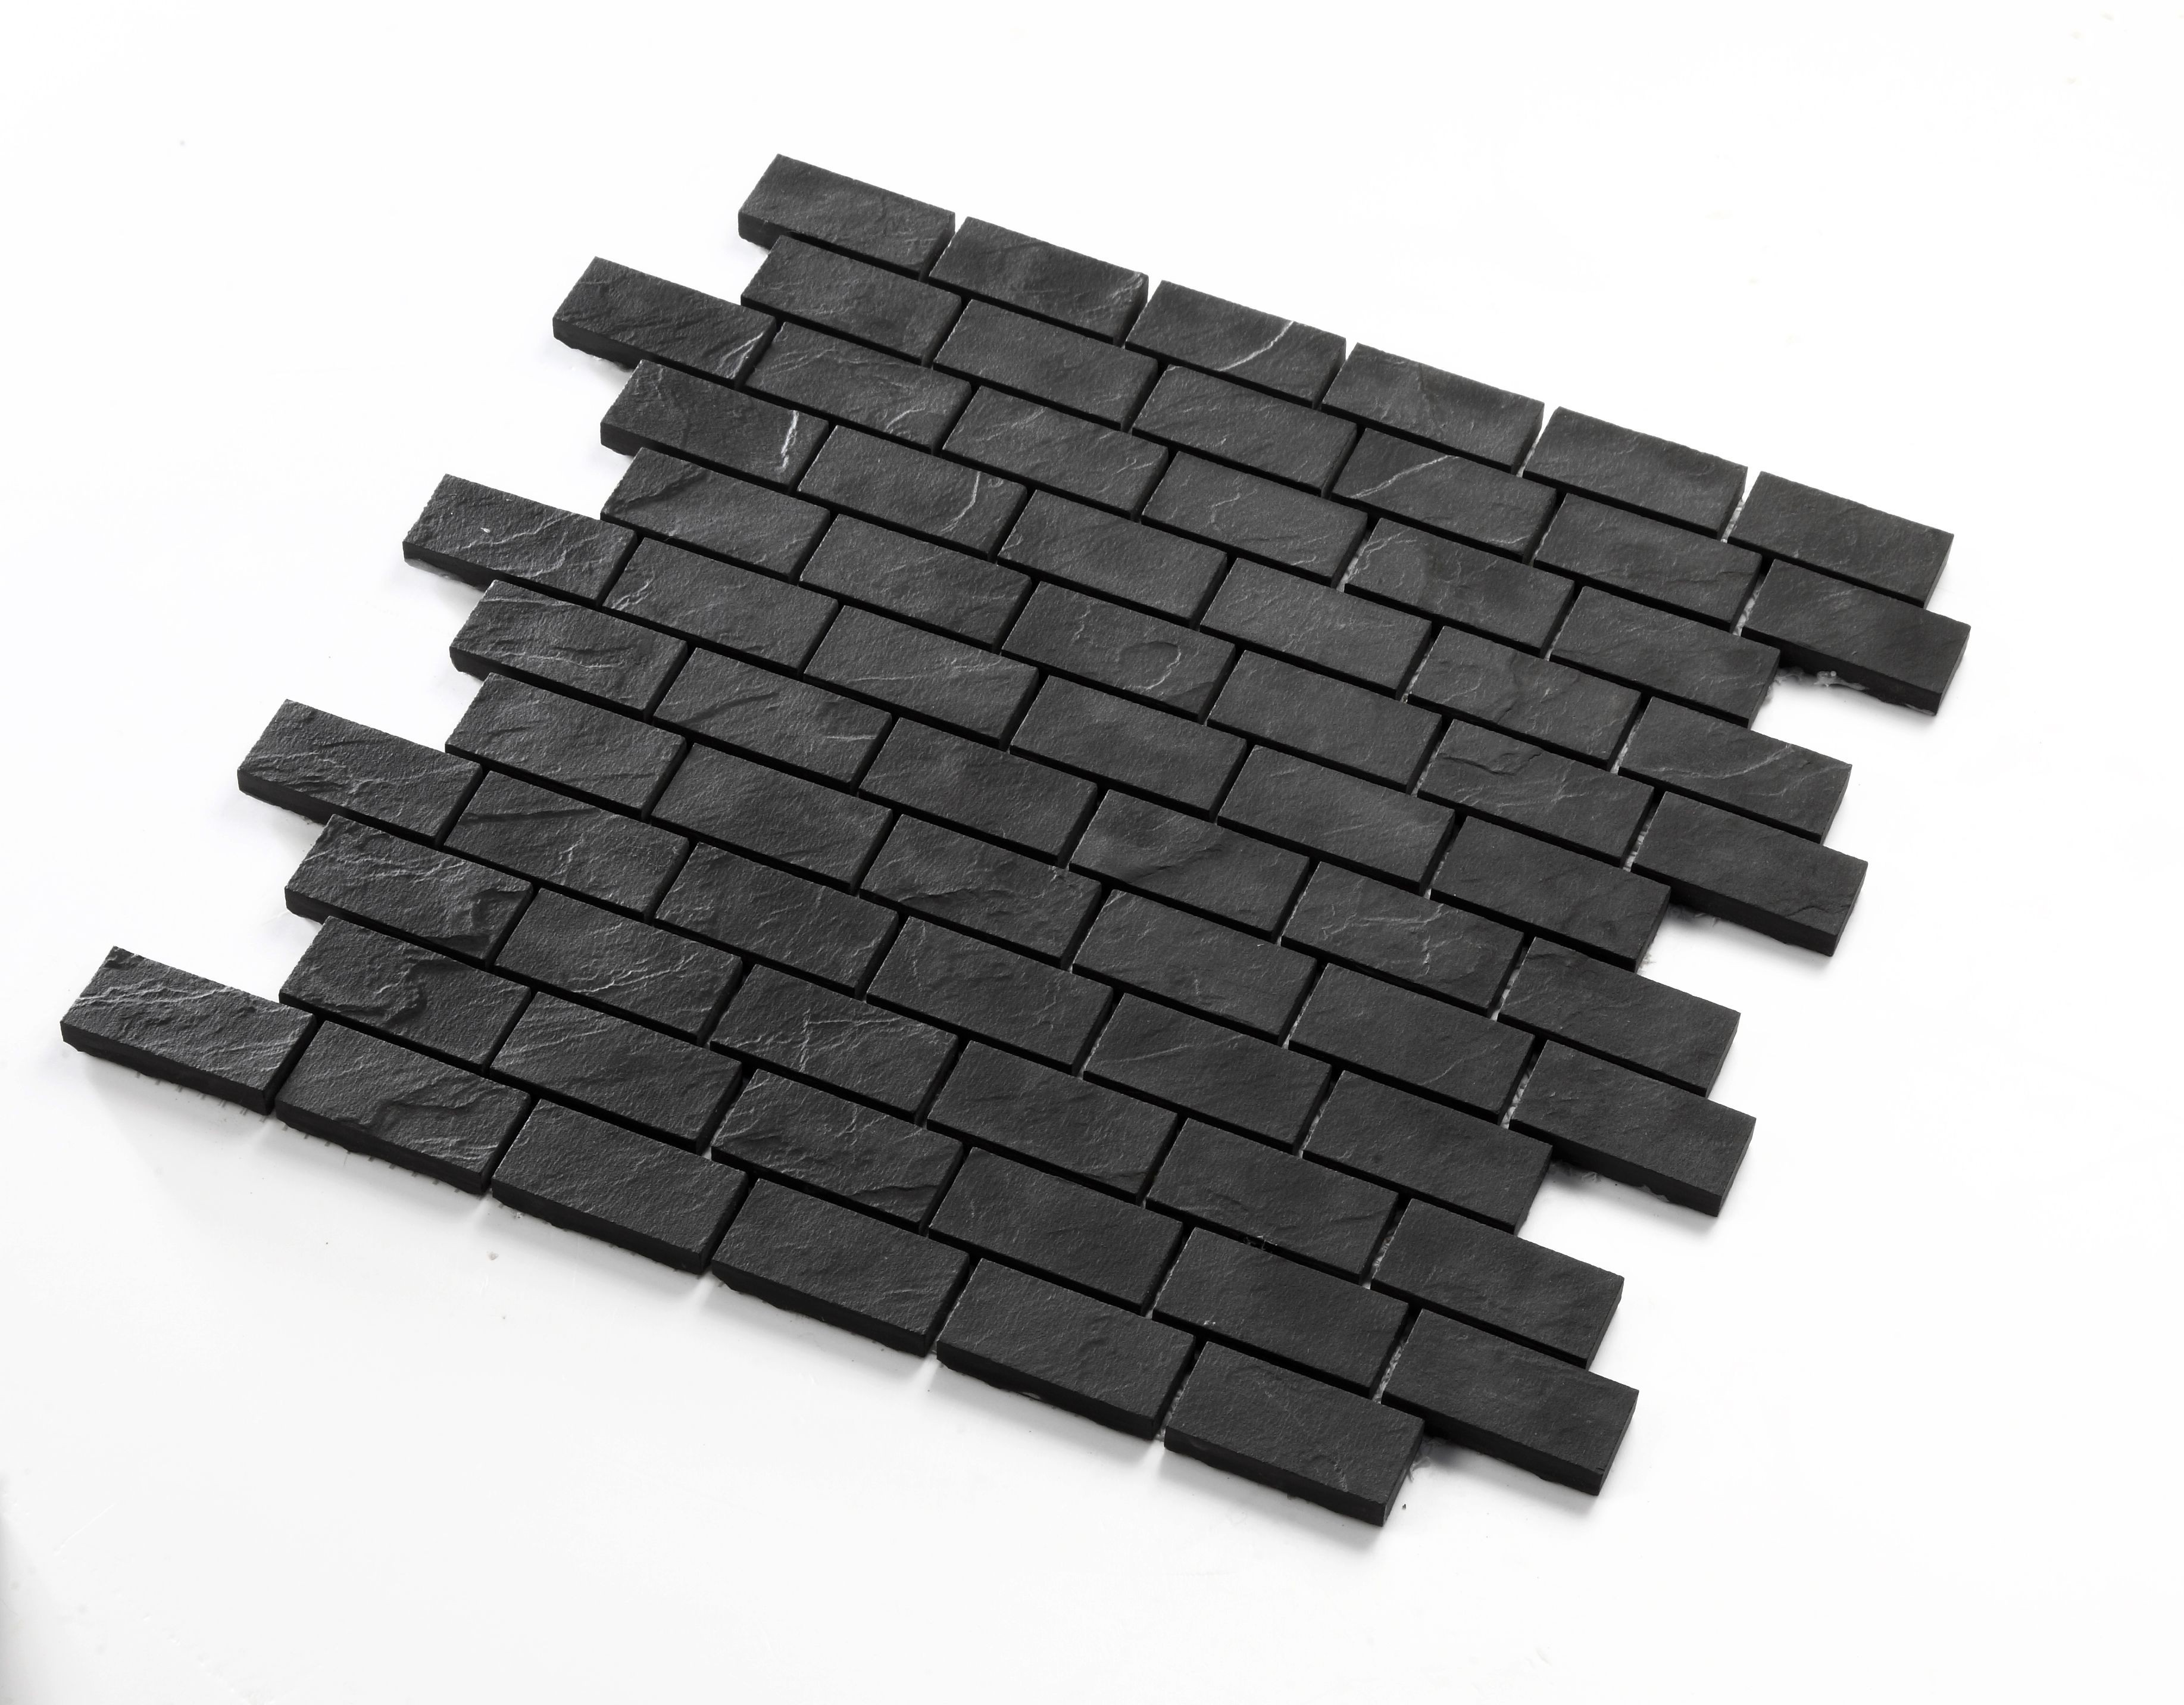 - Black Ceramic Tile Mosaic Tile Kitchen Backsplash Mp-boone